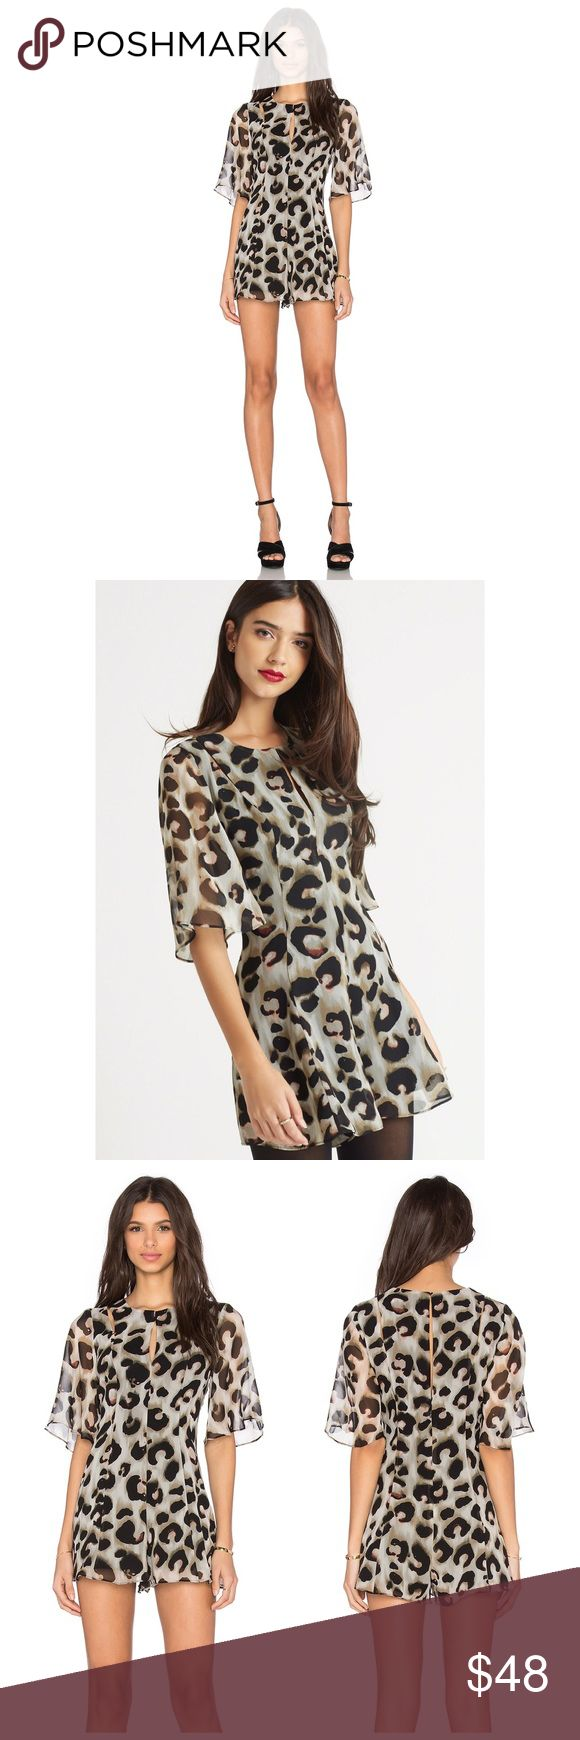 "🆕 BCBGeneration Romper New with tags! BCBGeneration Olive Leopard Romper...Play up your ferociously chic style with this animal print romper...Round neckline...Elbow-length flutter sleeves...Princess seaming...Slash cutouts at shoulders...Short-length inseam, 2,5""...Concealed back zipper with hook-and-eye closure...Self: Polyester georgette...Lining: Polyester crepe de chine...Machine Wash. Size 2. Retail $108 BCBGeneration Pants Jumpsuits & Rompers"